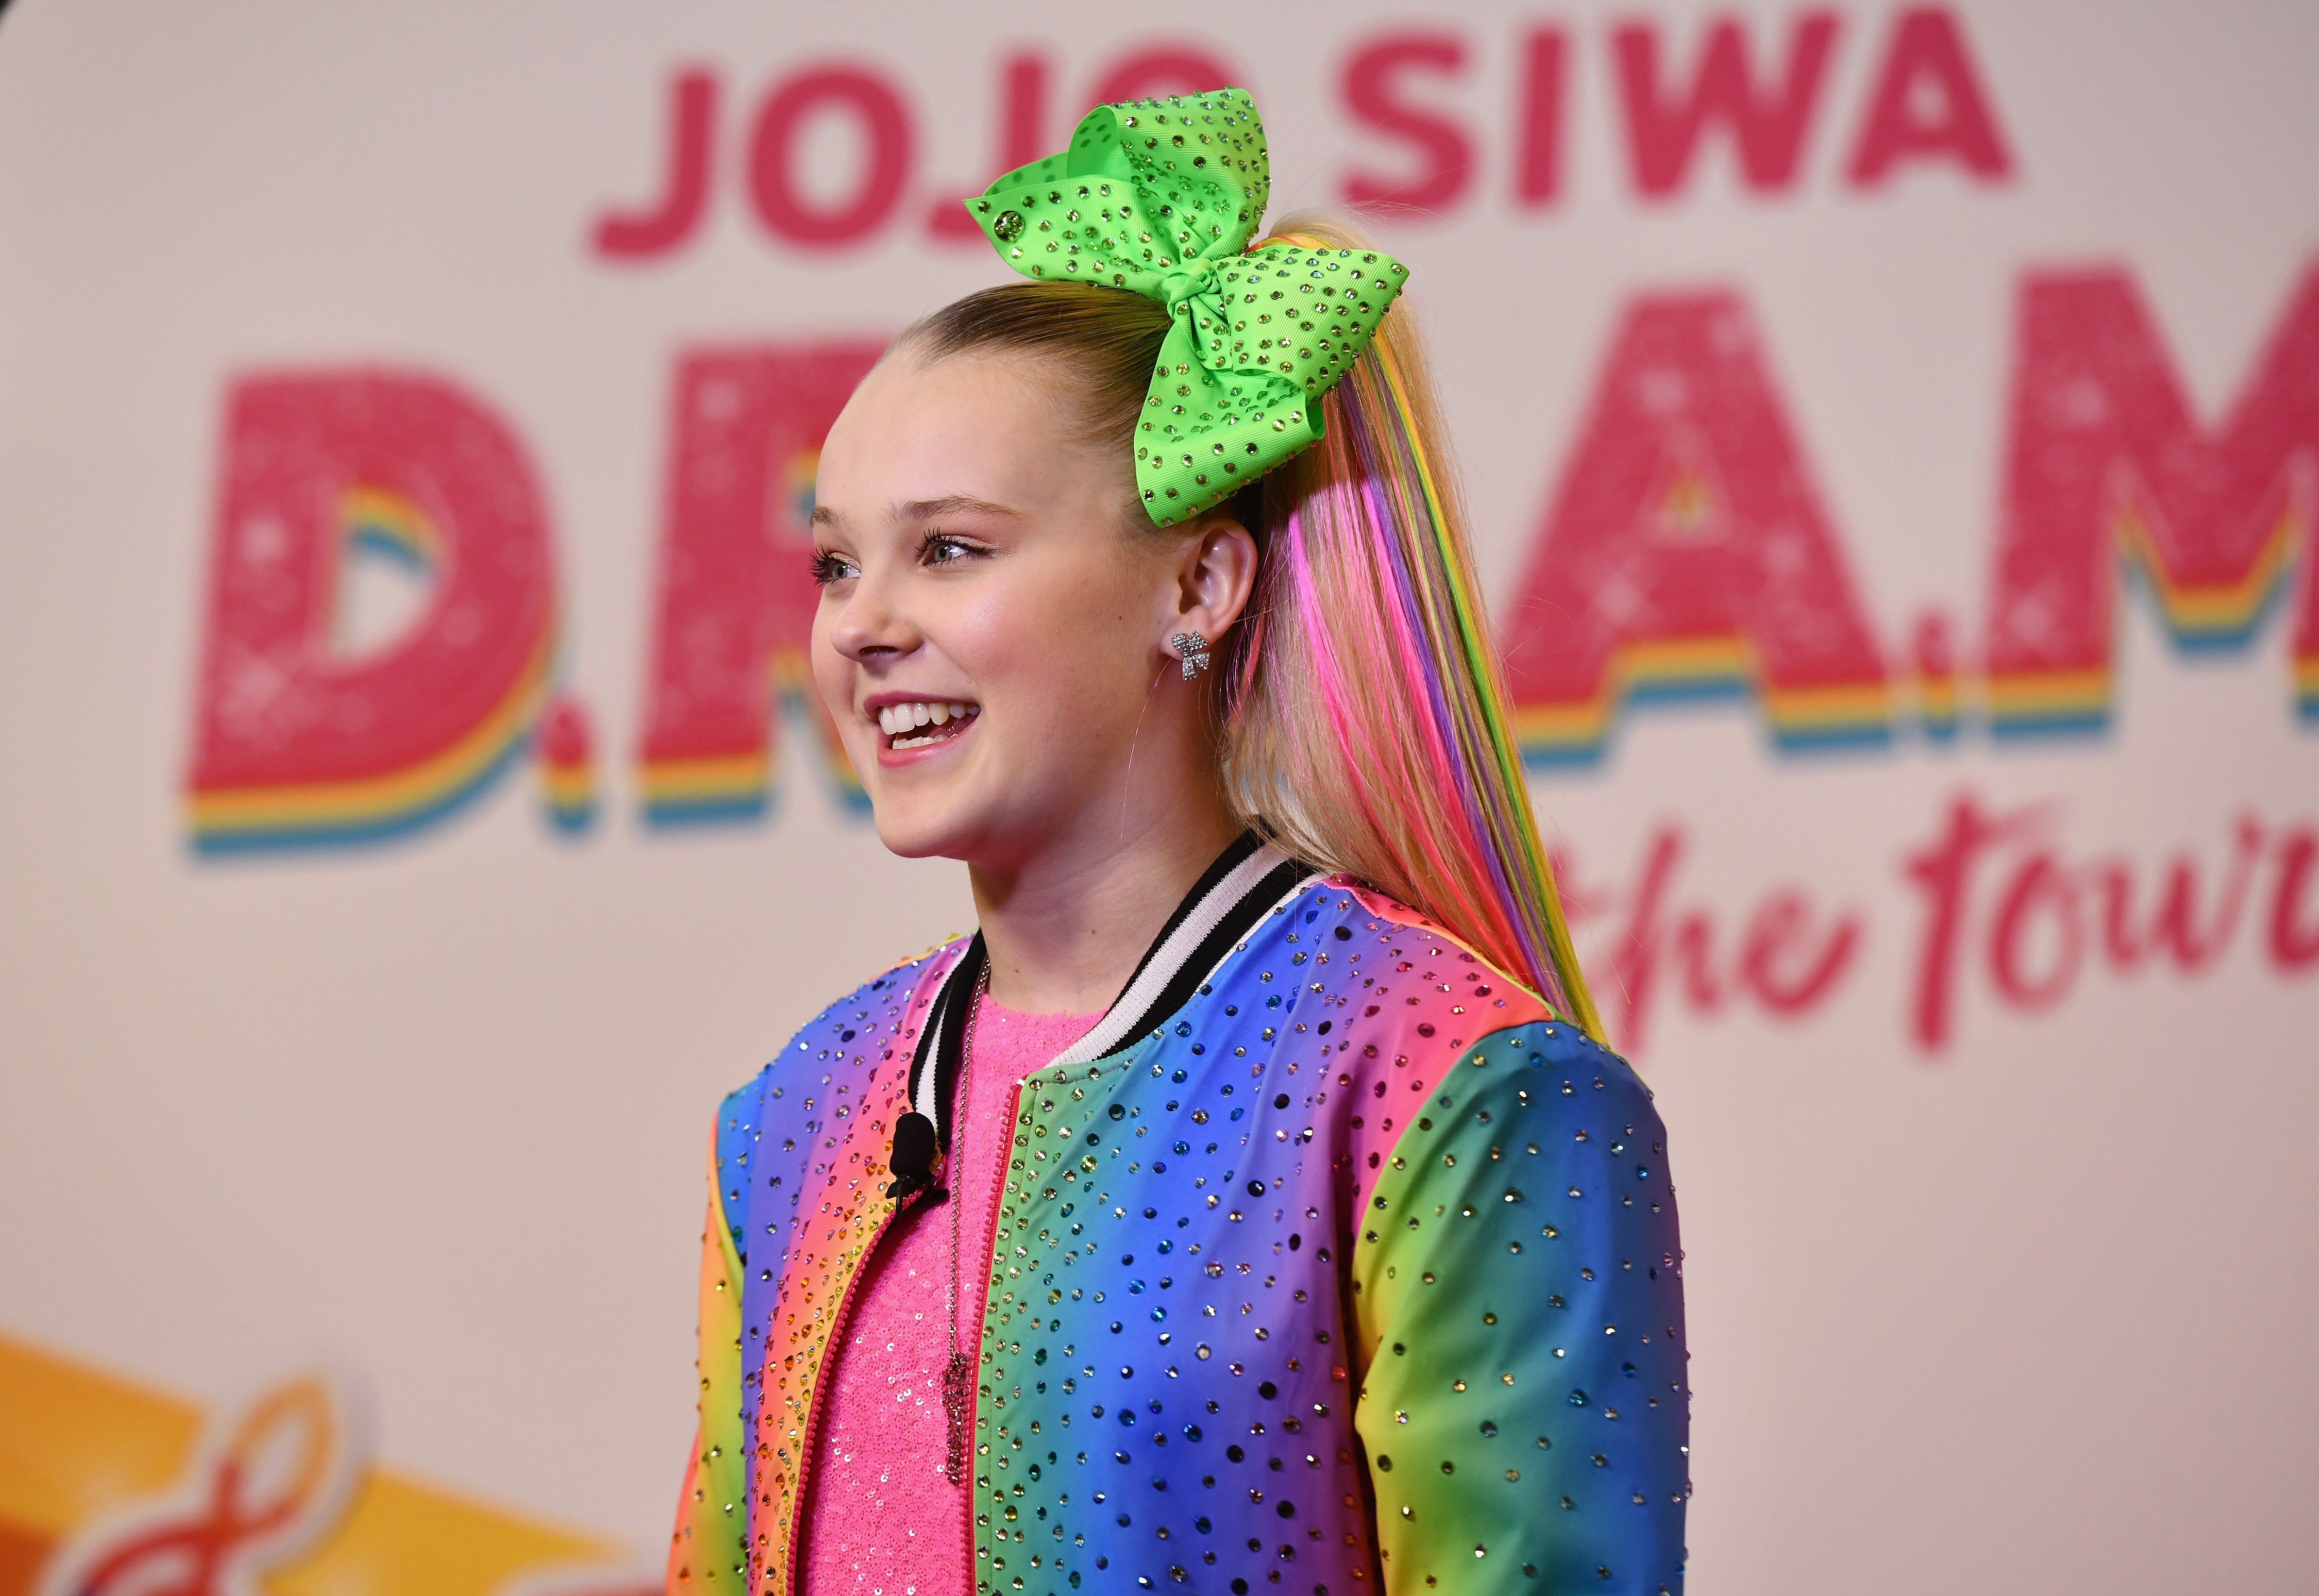 JoJo Siwa announces her upcoming EP and D.R.E.A.M. Tour at Sugar Factory on November 7, 2018 in New York | Photo: Getty Images